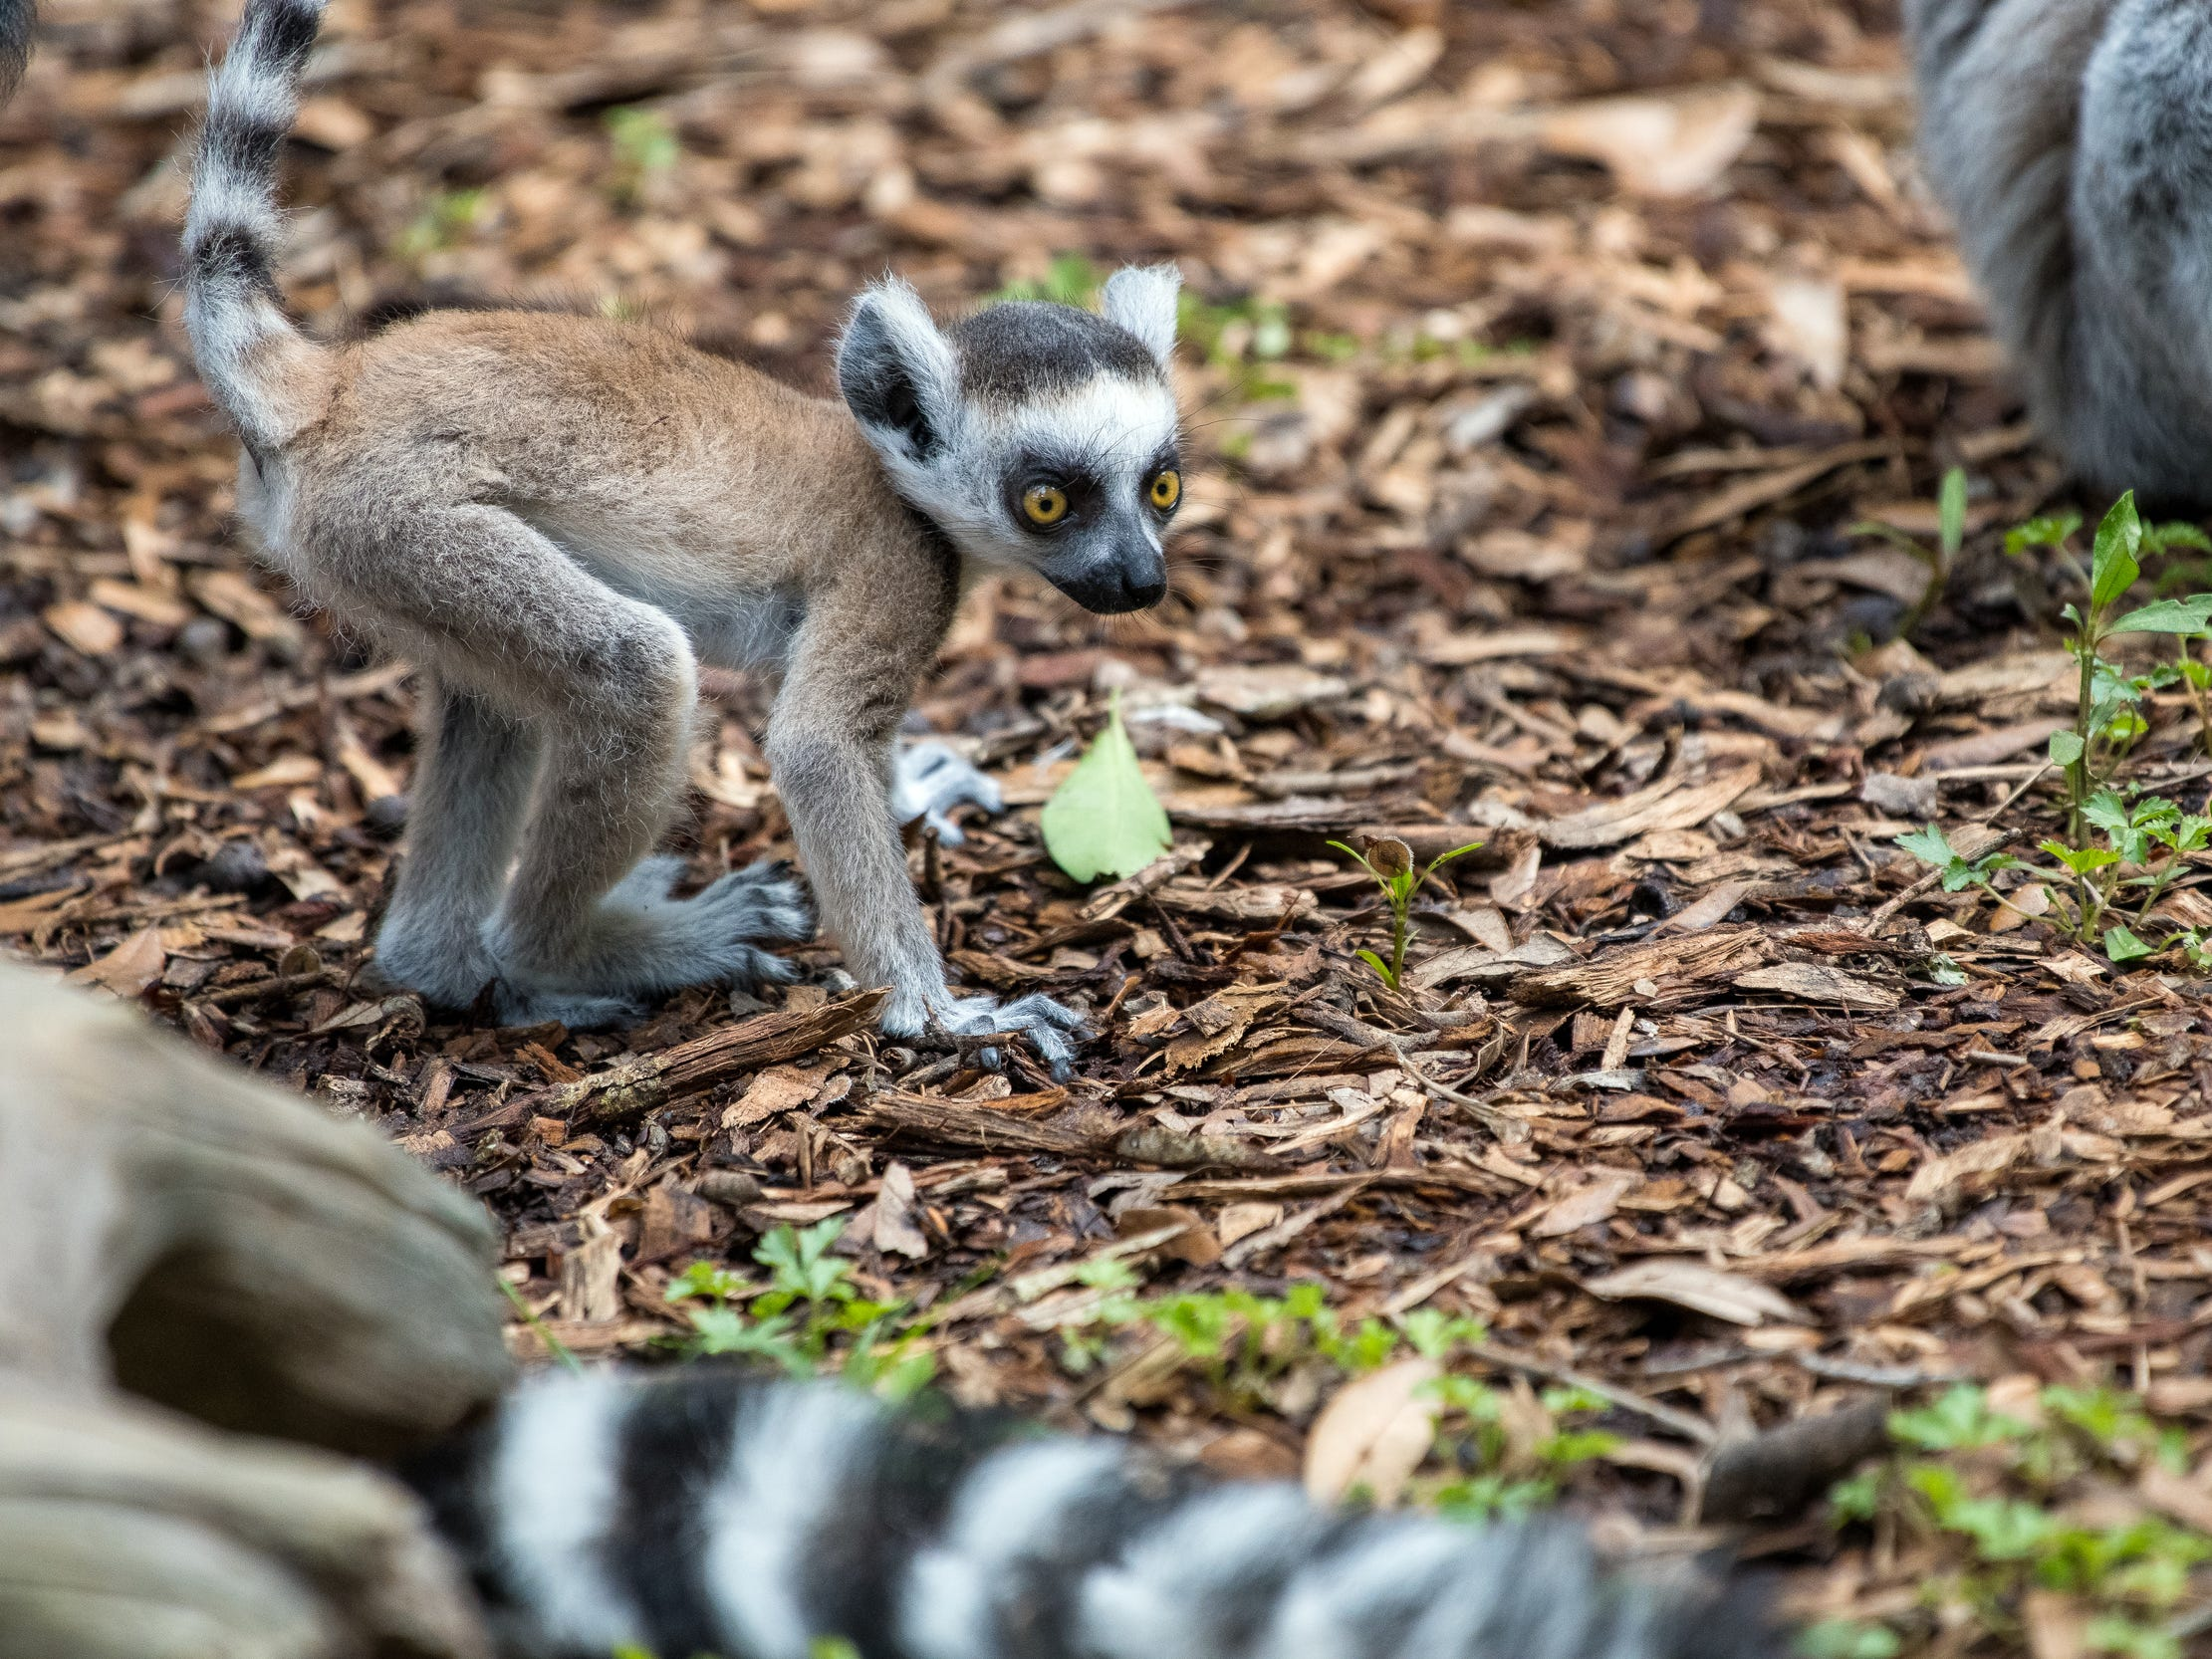 The ring-tailed lemur baby can be seen playing and exploring at the Houston Zoo.